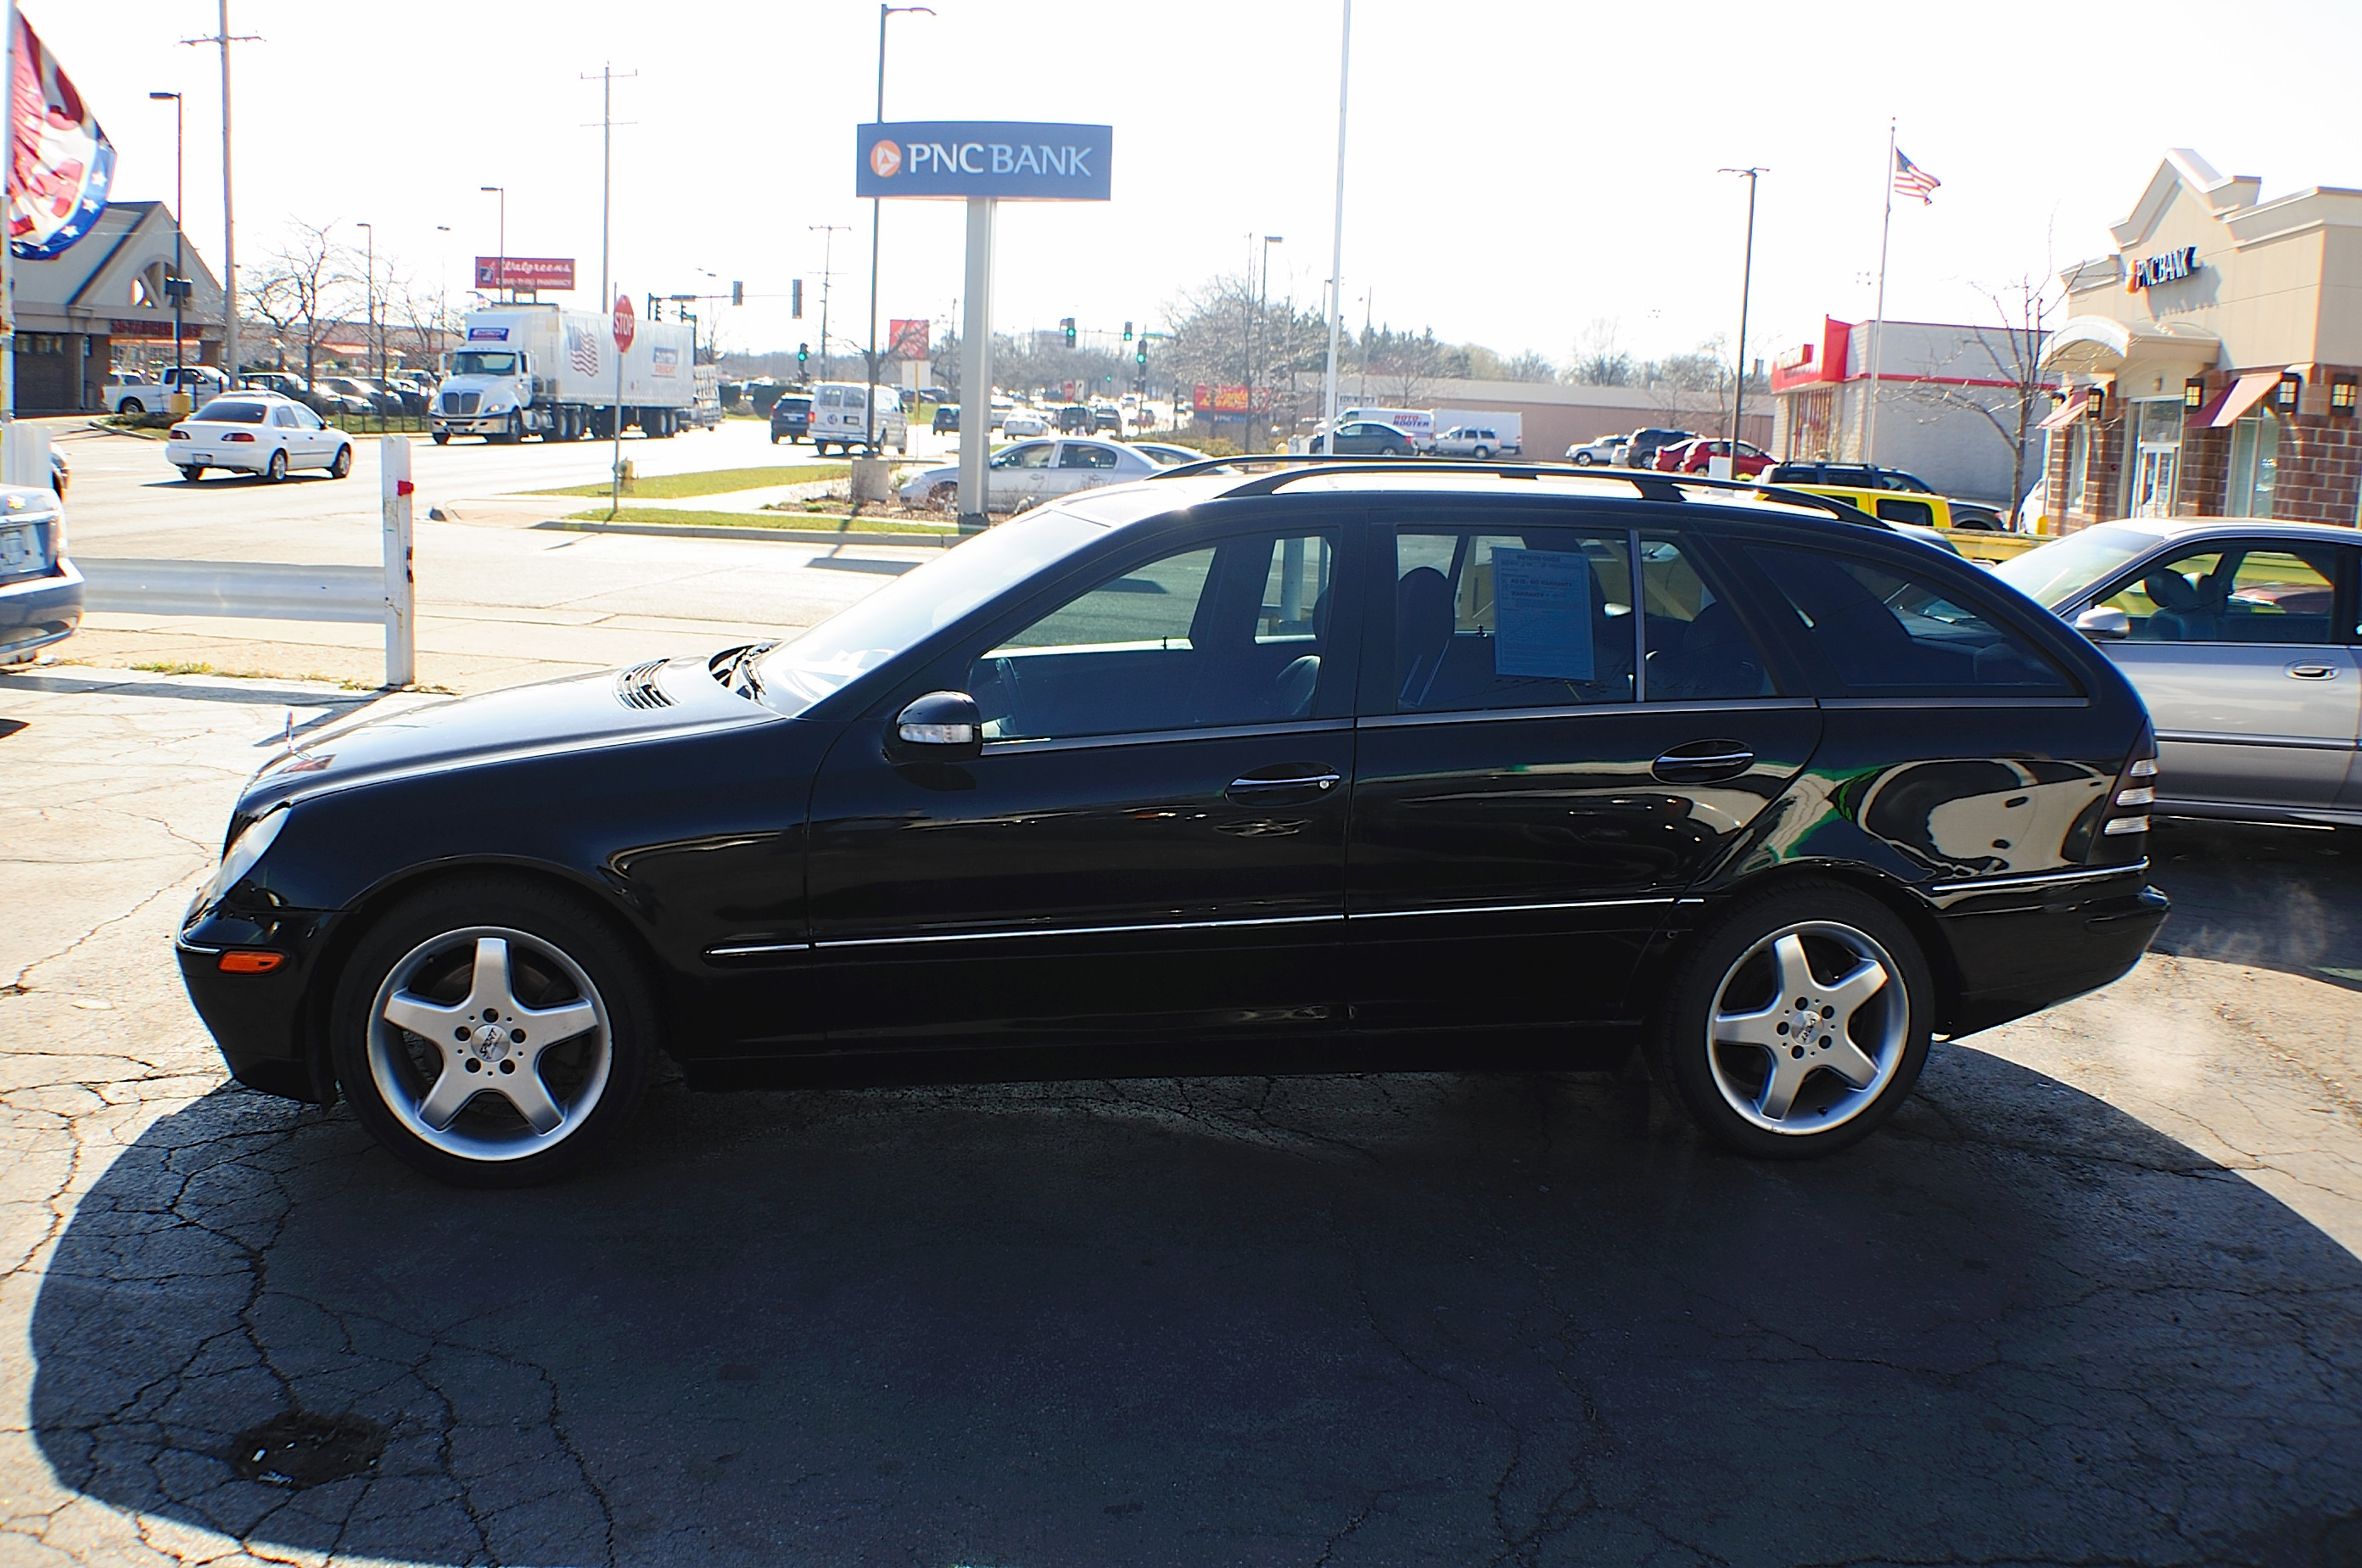 2002 Mercedes C320 Black 4Dr Wagon used car sale Barrington Beach Park Buffalo Grove